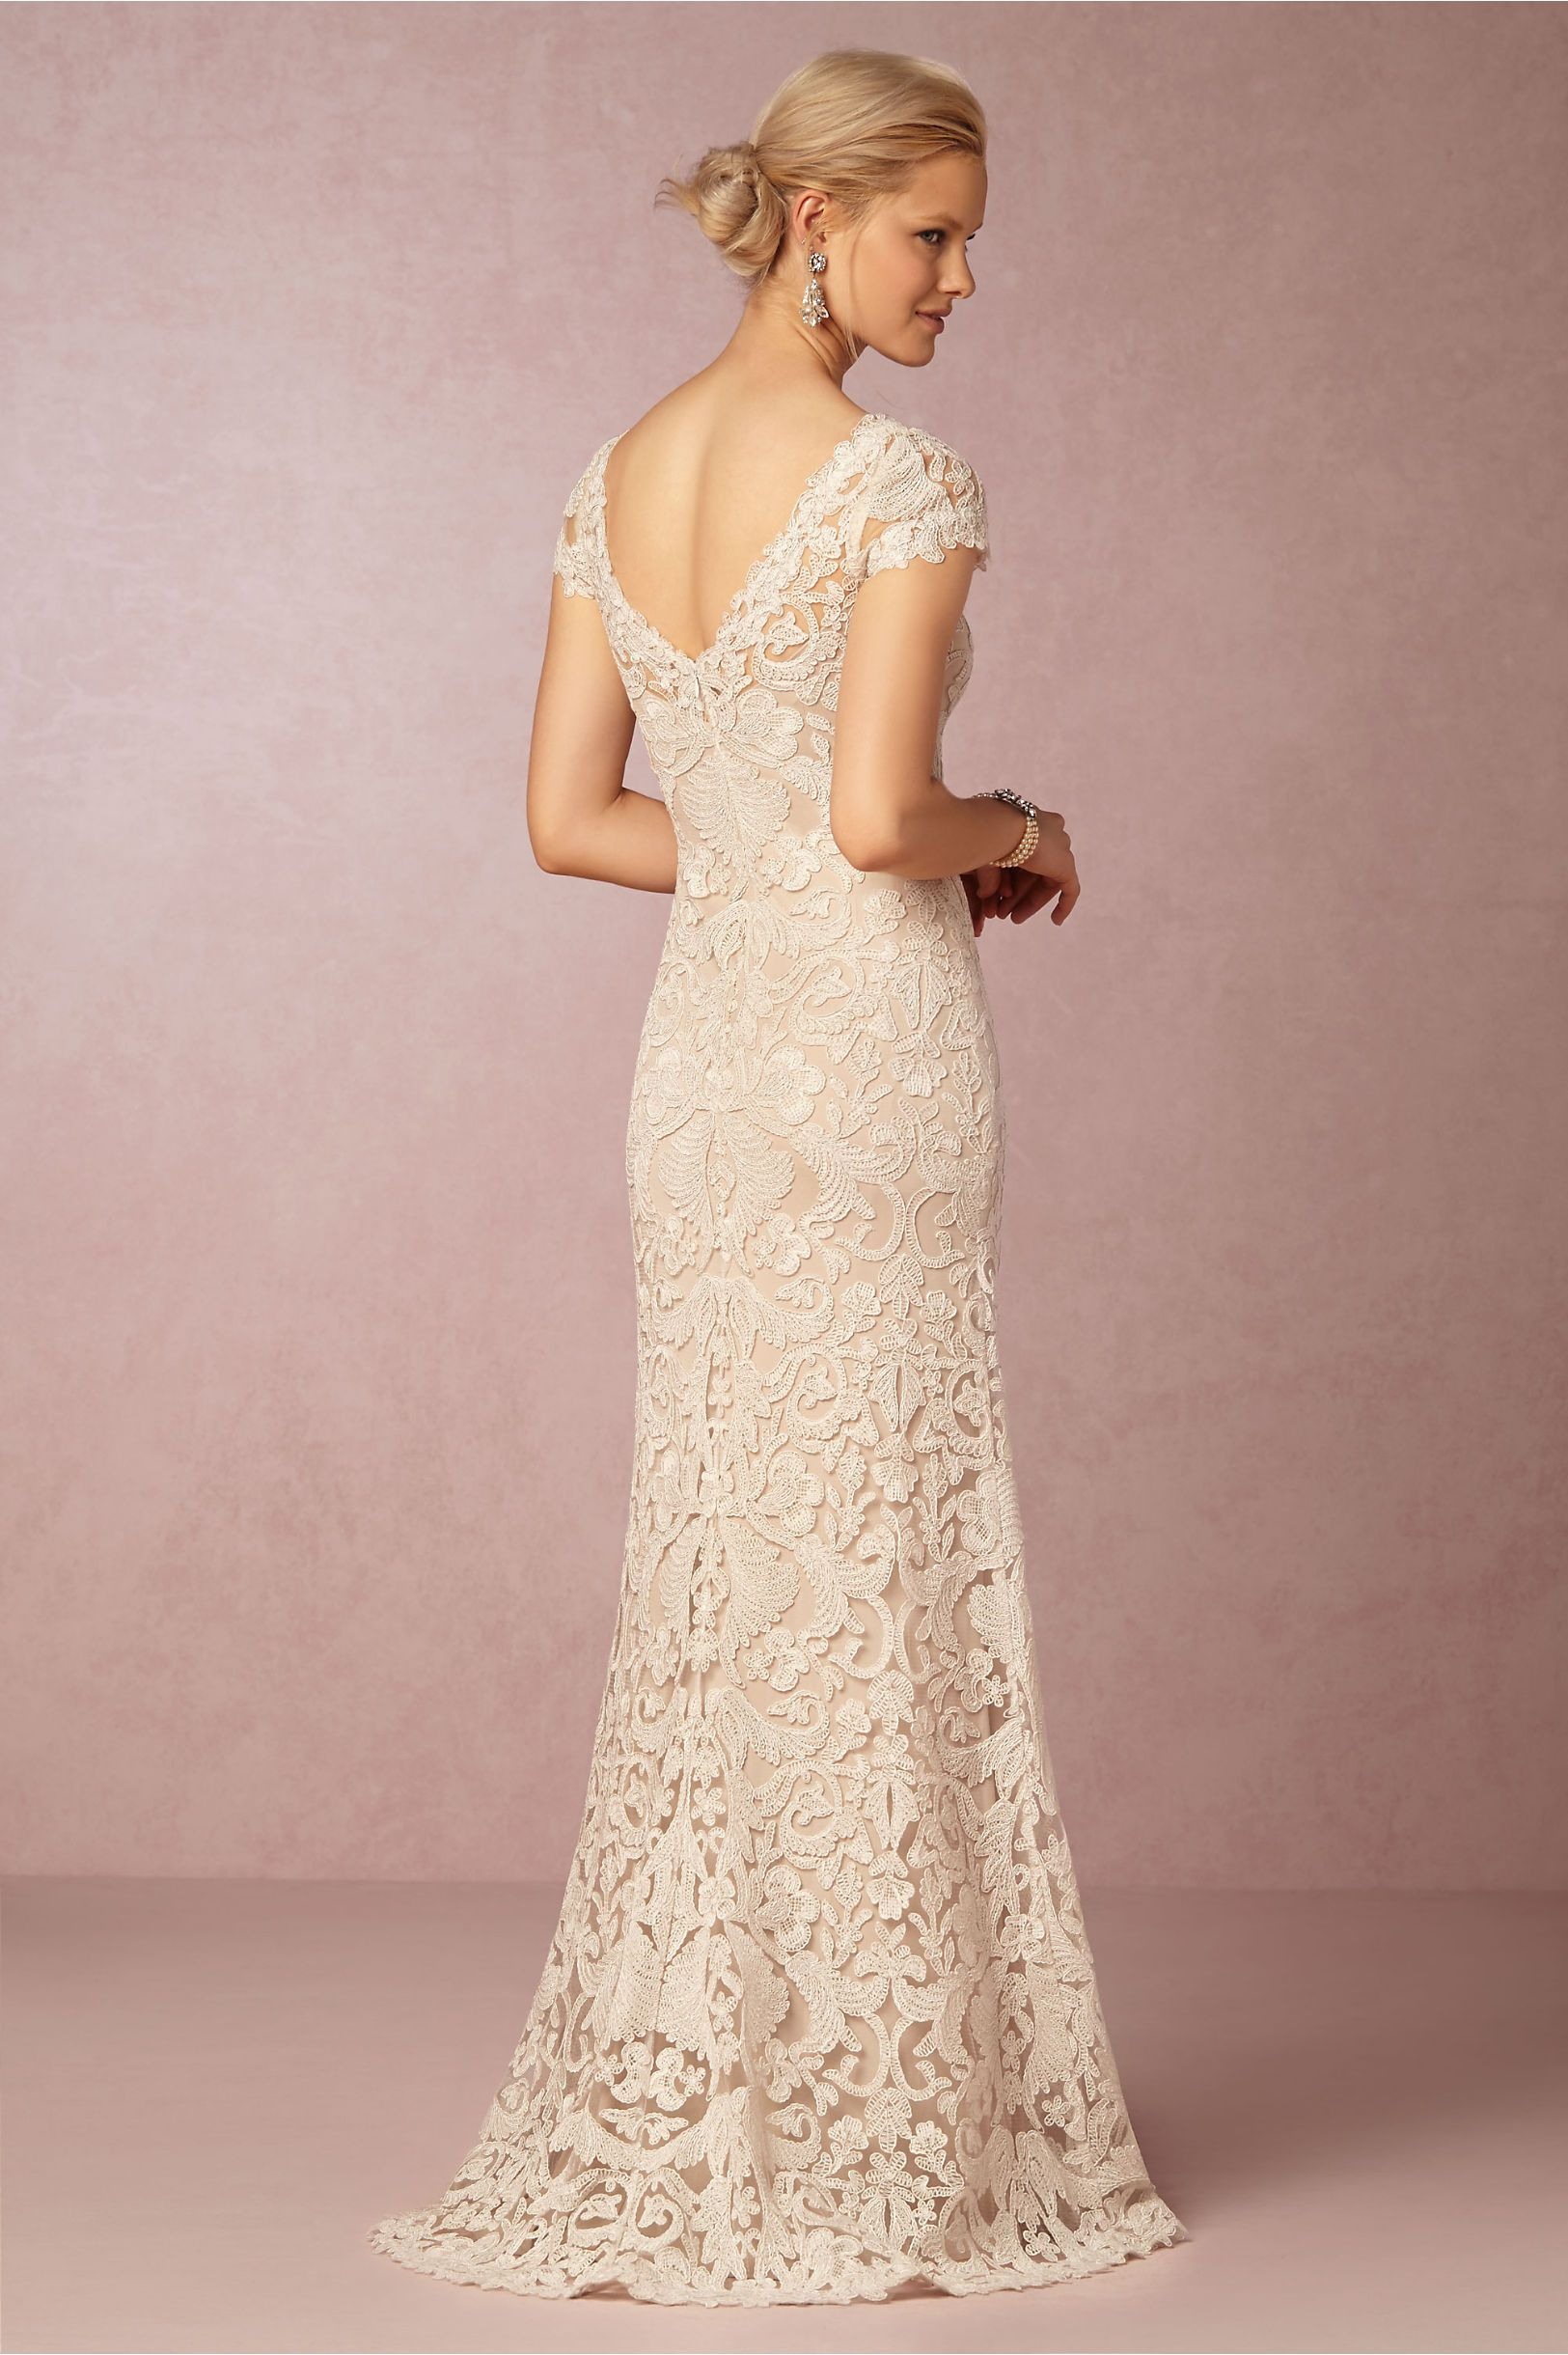 August Gown in Bride Wedding Dresses at BHLDN | Wedding Dresses ...